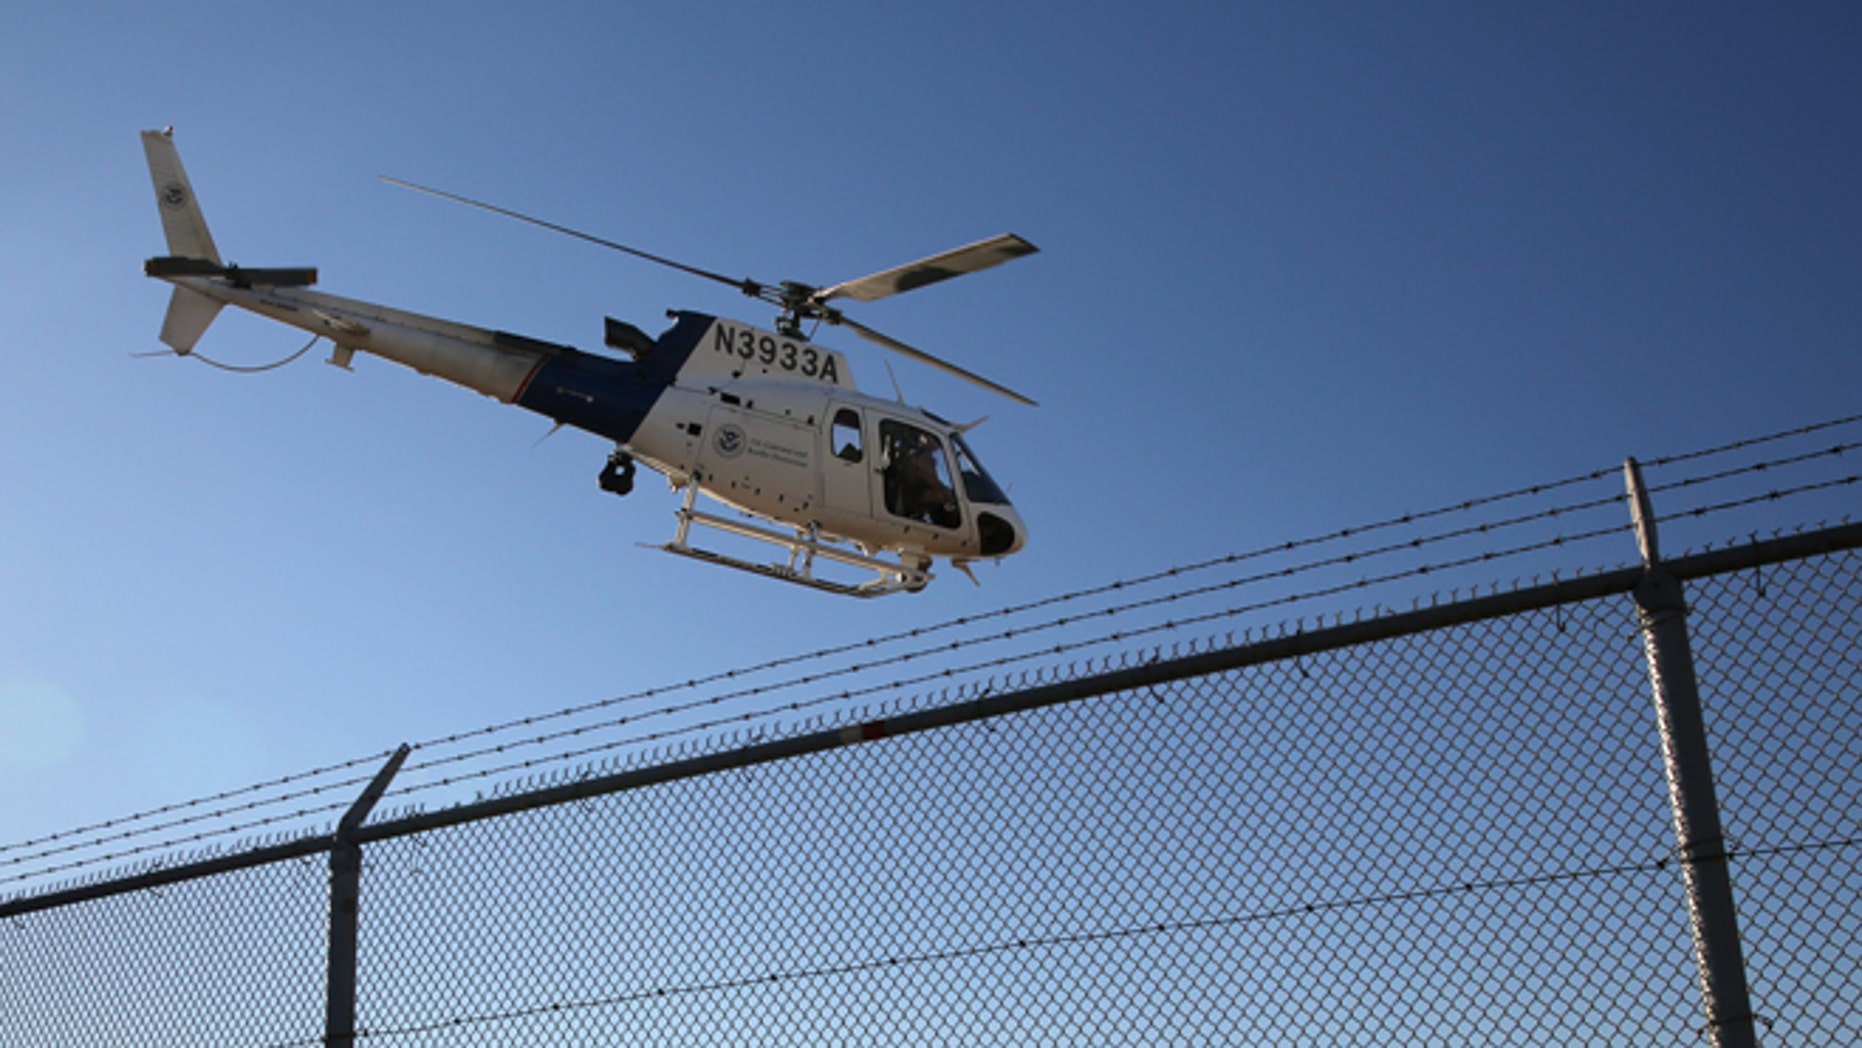 SAN DIEGO, CA - OCTOBER 01:  A U.S. Office of Air and Marine (OAM) helicopter patrols near the U.S.-Mexico border on October 1, 2013 in San Diego, California. OAM helicopters support U.S. Border Patrol as well as Immigration and Customs Enforcement (ICE), personnel protecting border areas. While much of the Federal Government has closed down, personnel considered essential, such as border agents, remain working.  (Photo by John Moore/Getty Images)